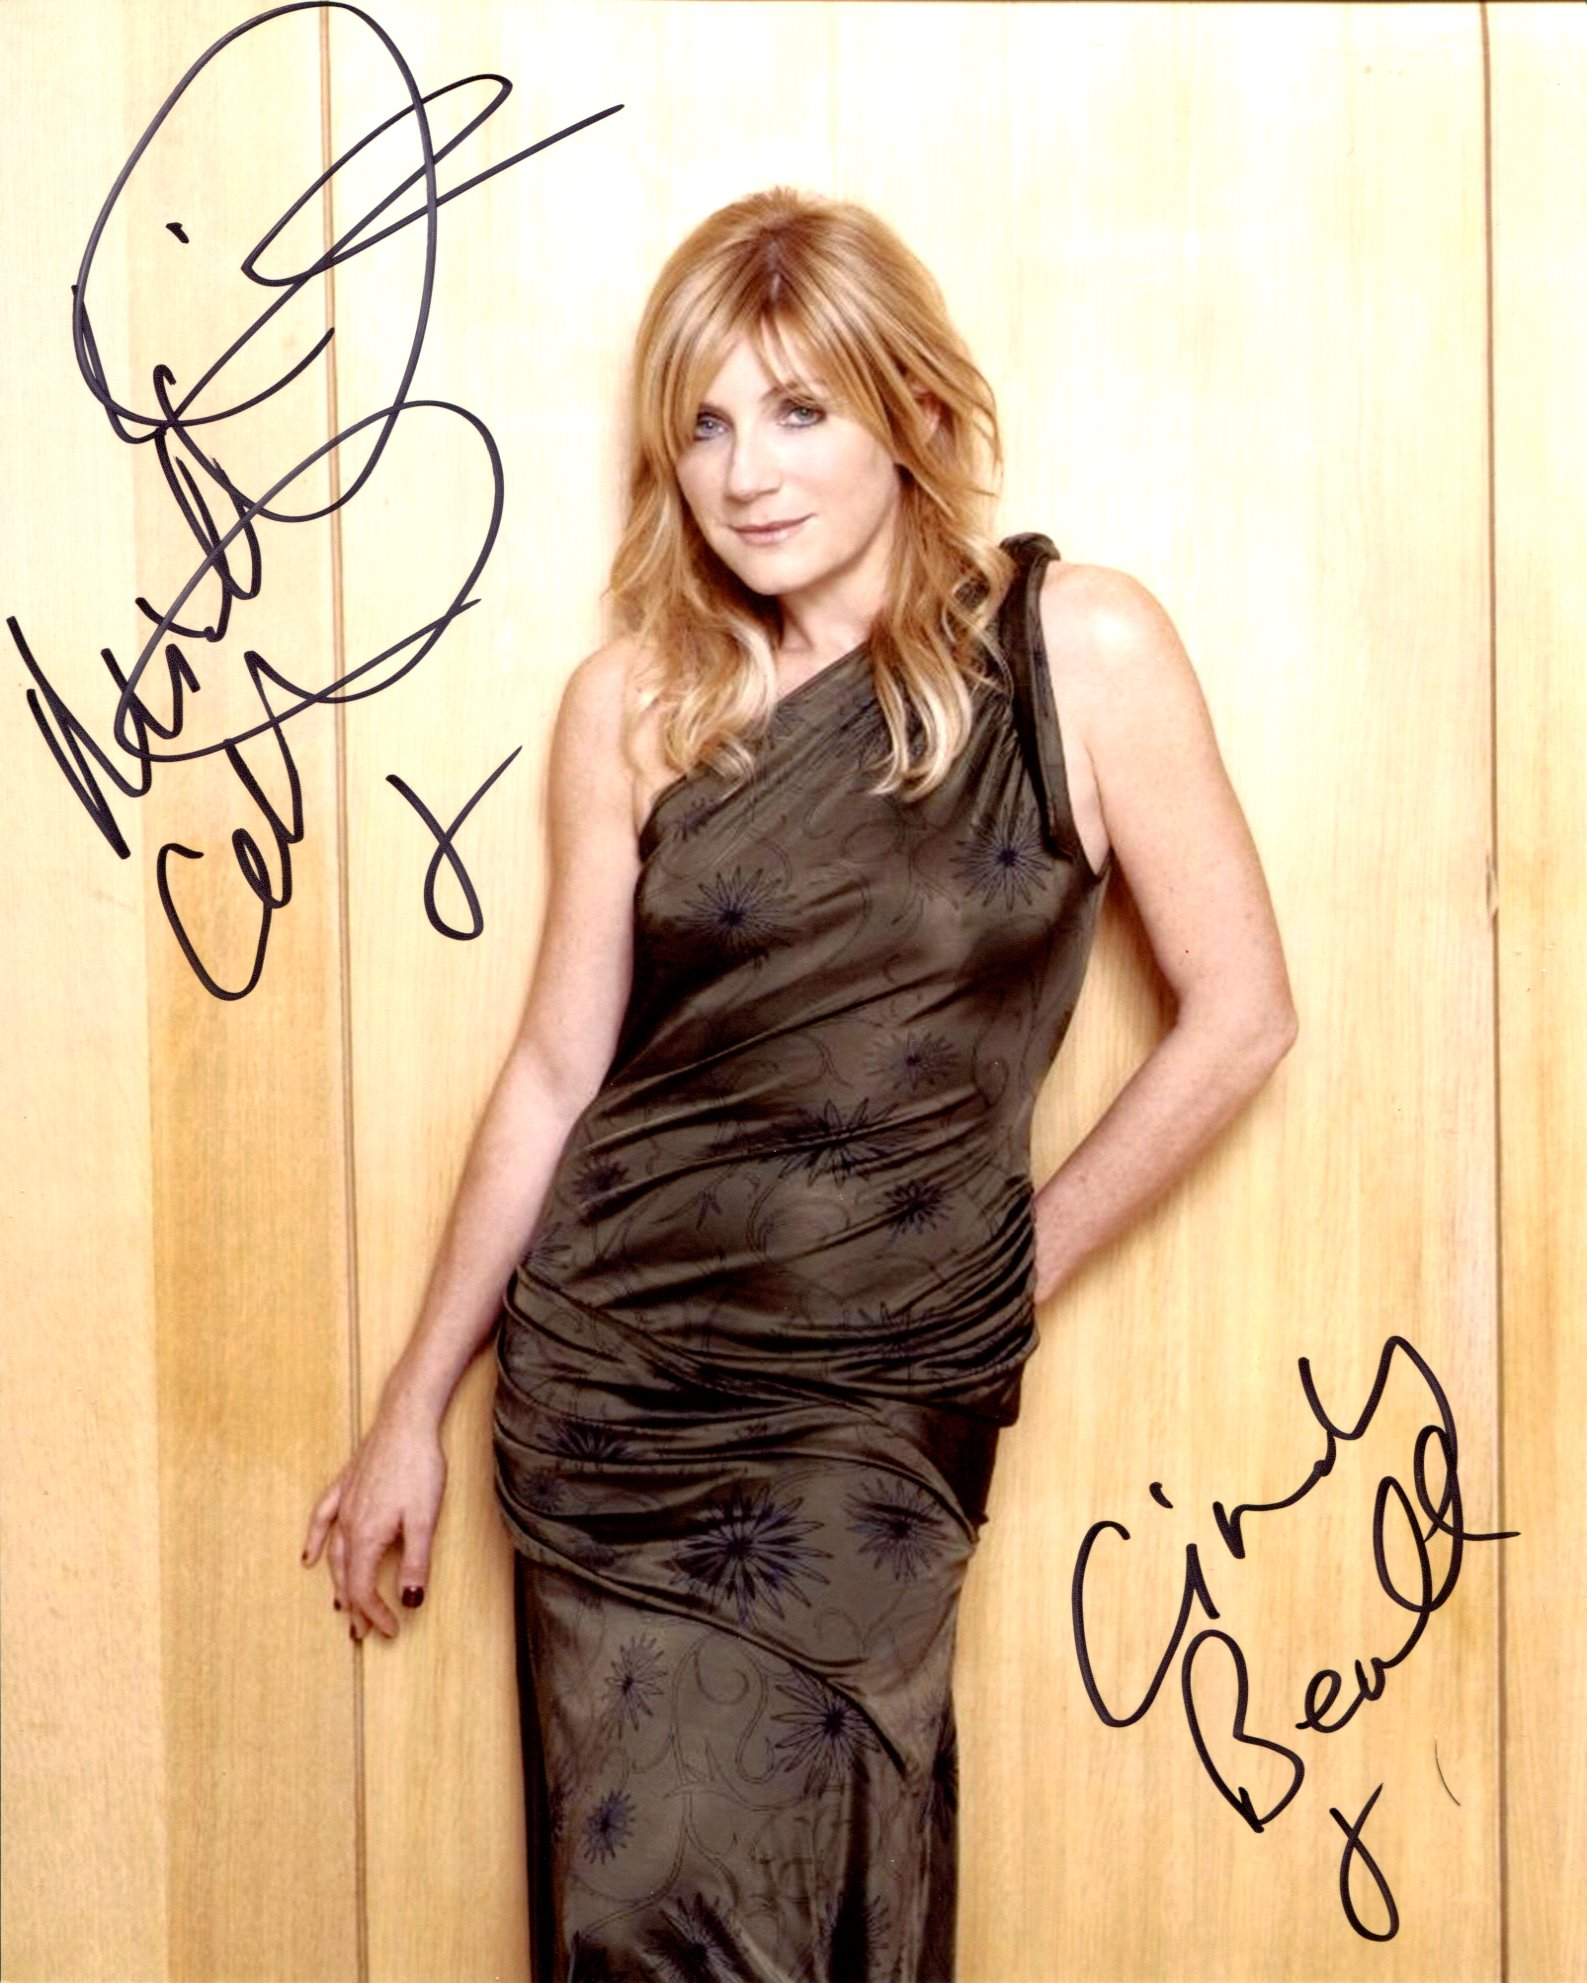 Michelle Collins, 8x10 photo signed by this Doctor Who and Eastenders actress. Good condition. All